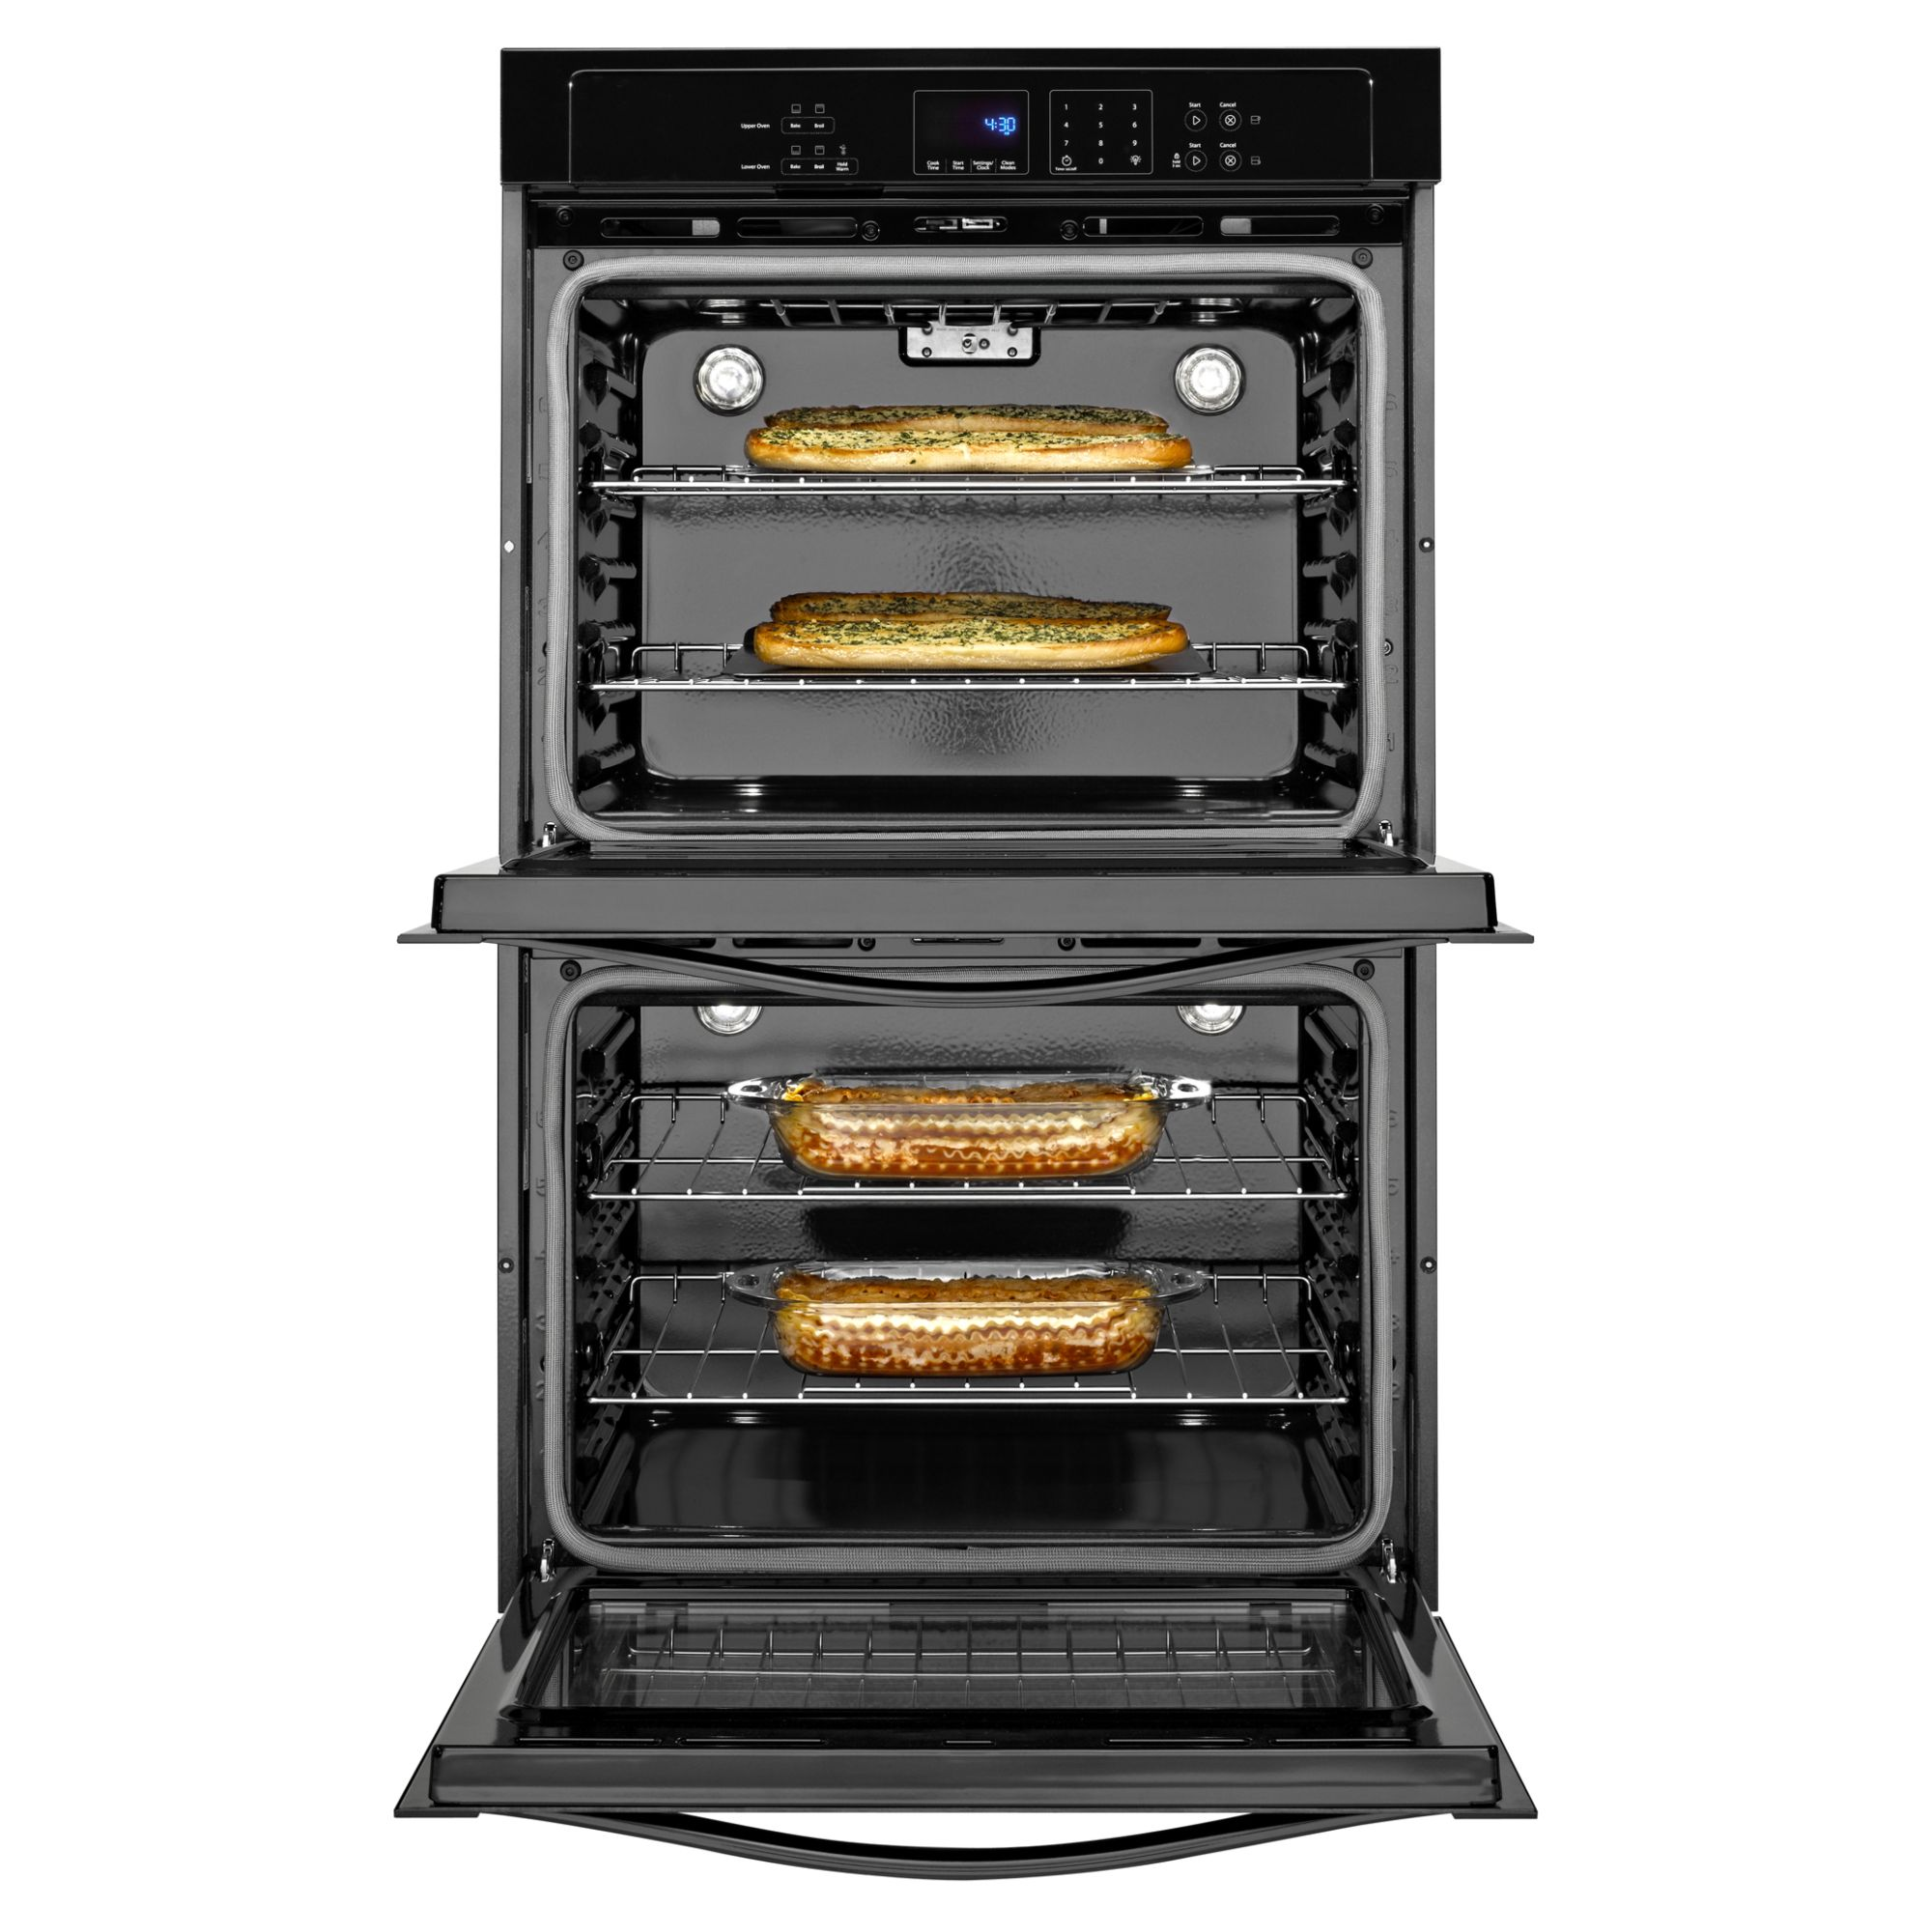 "Whirlpool WOD51EC0AB 30"" Electric Double Wall Oven w/ SteamClean - Black"